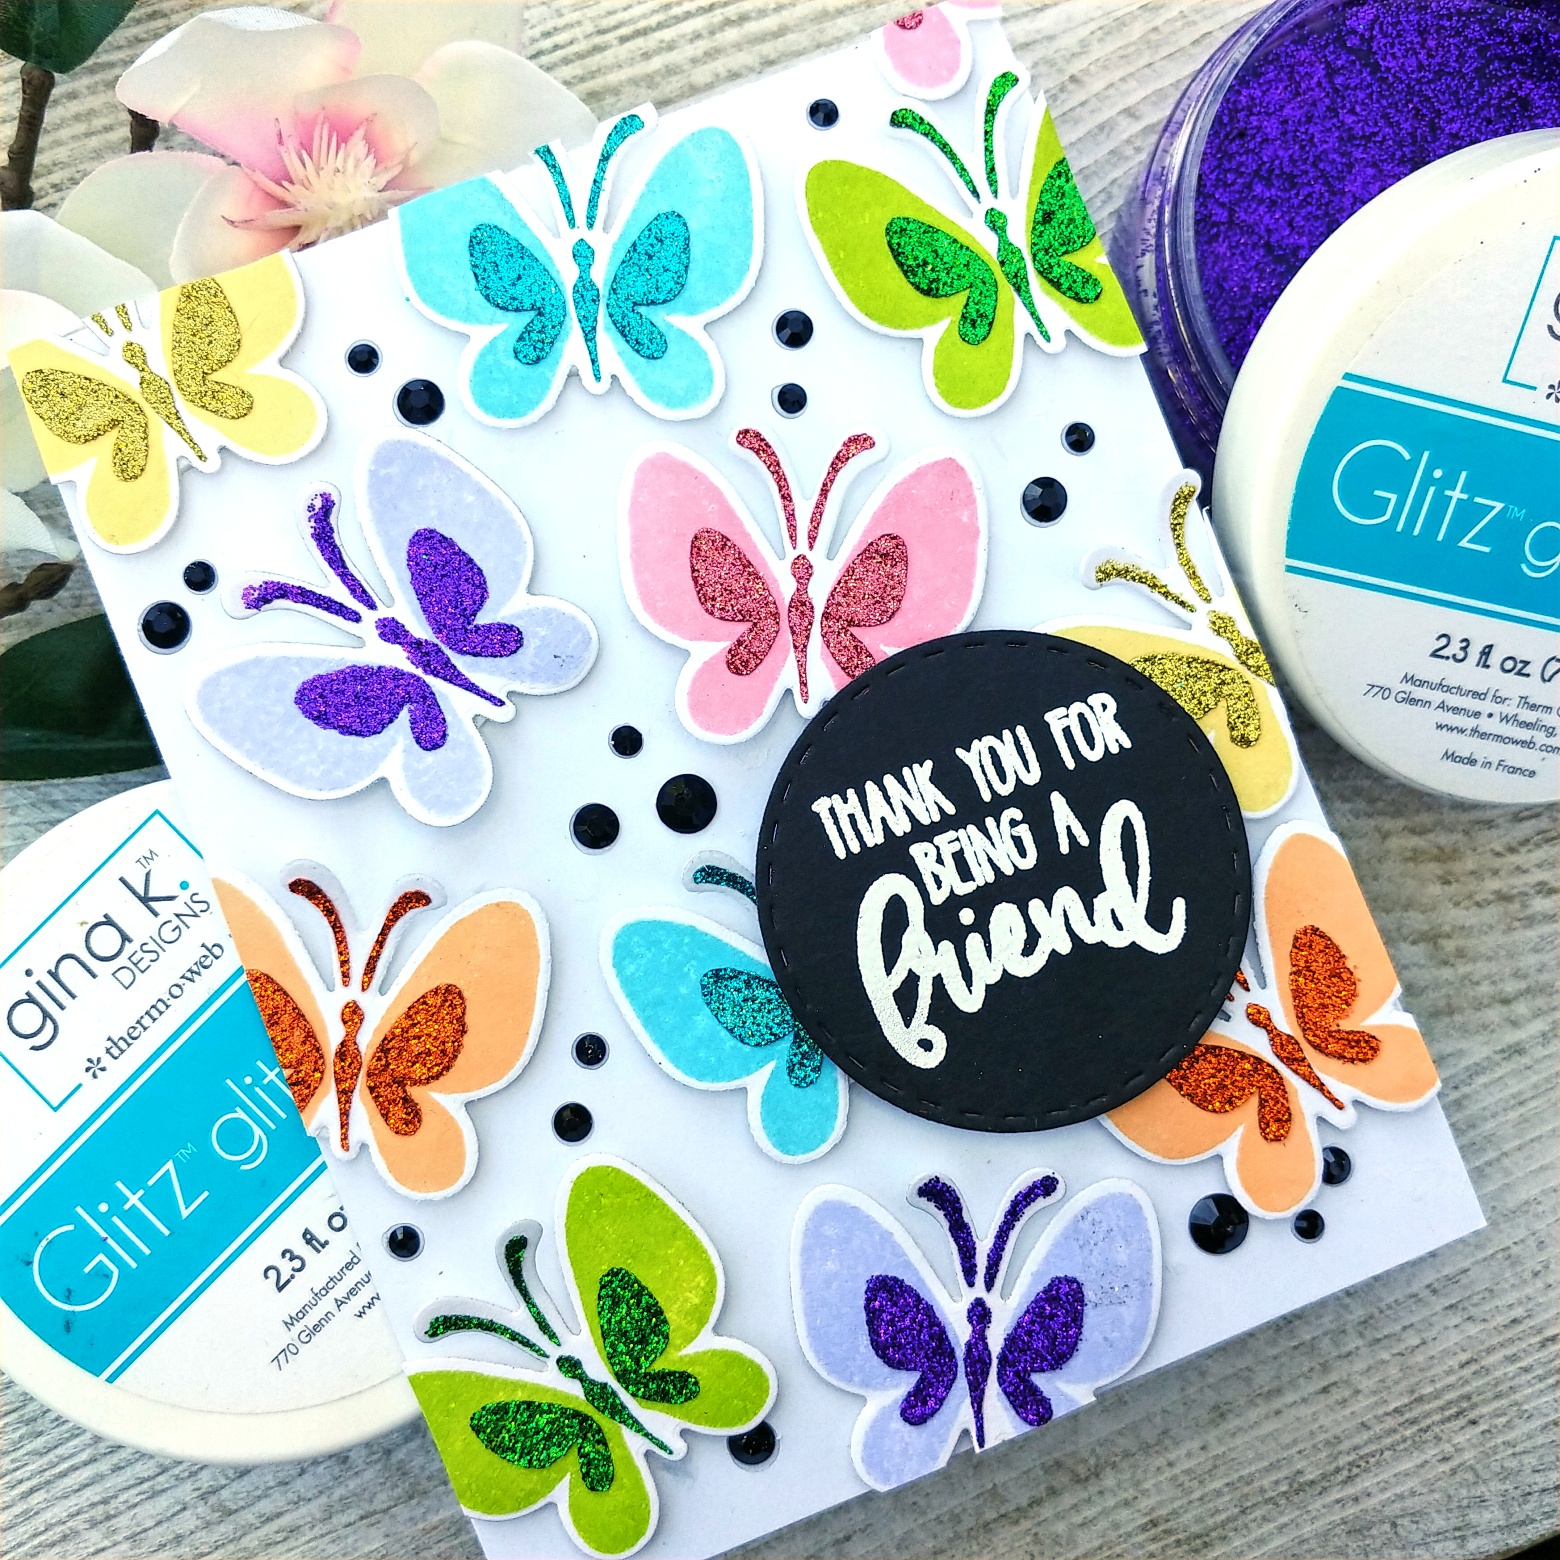 NO WM Glitz Petals and Wings 2